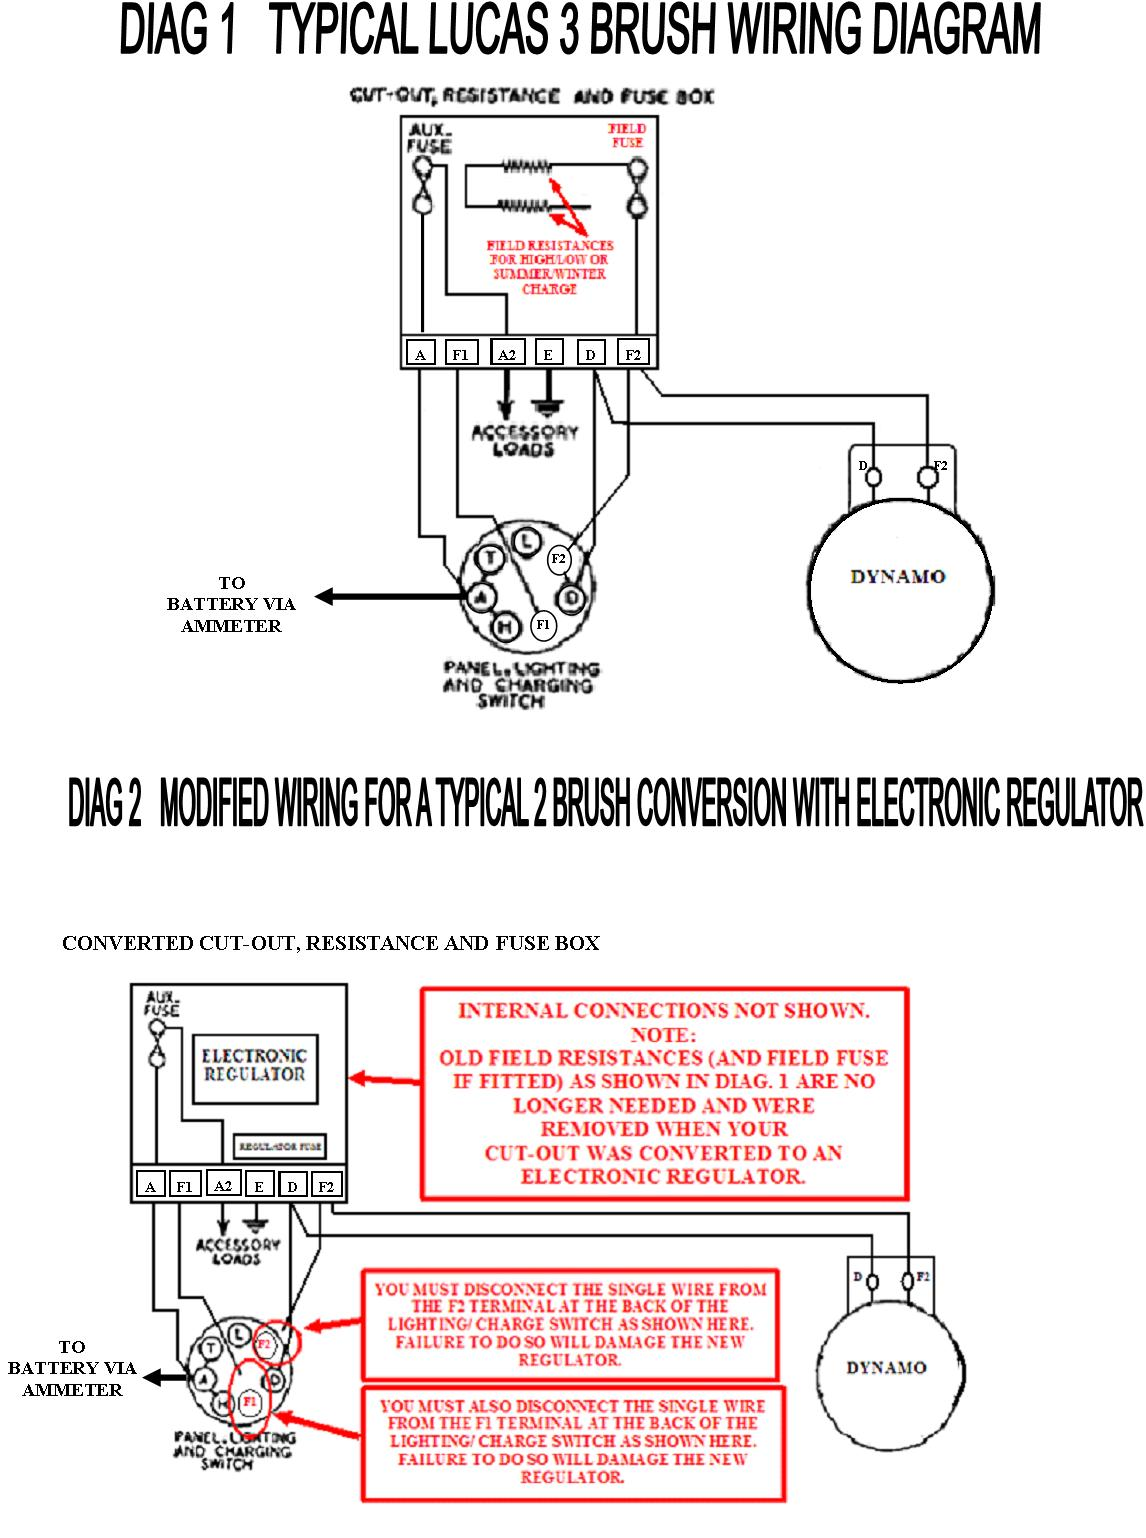 hight resolution of use the relevant diagram along with the supplied written instructions to check your wiring and connections during and after installation and